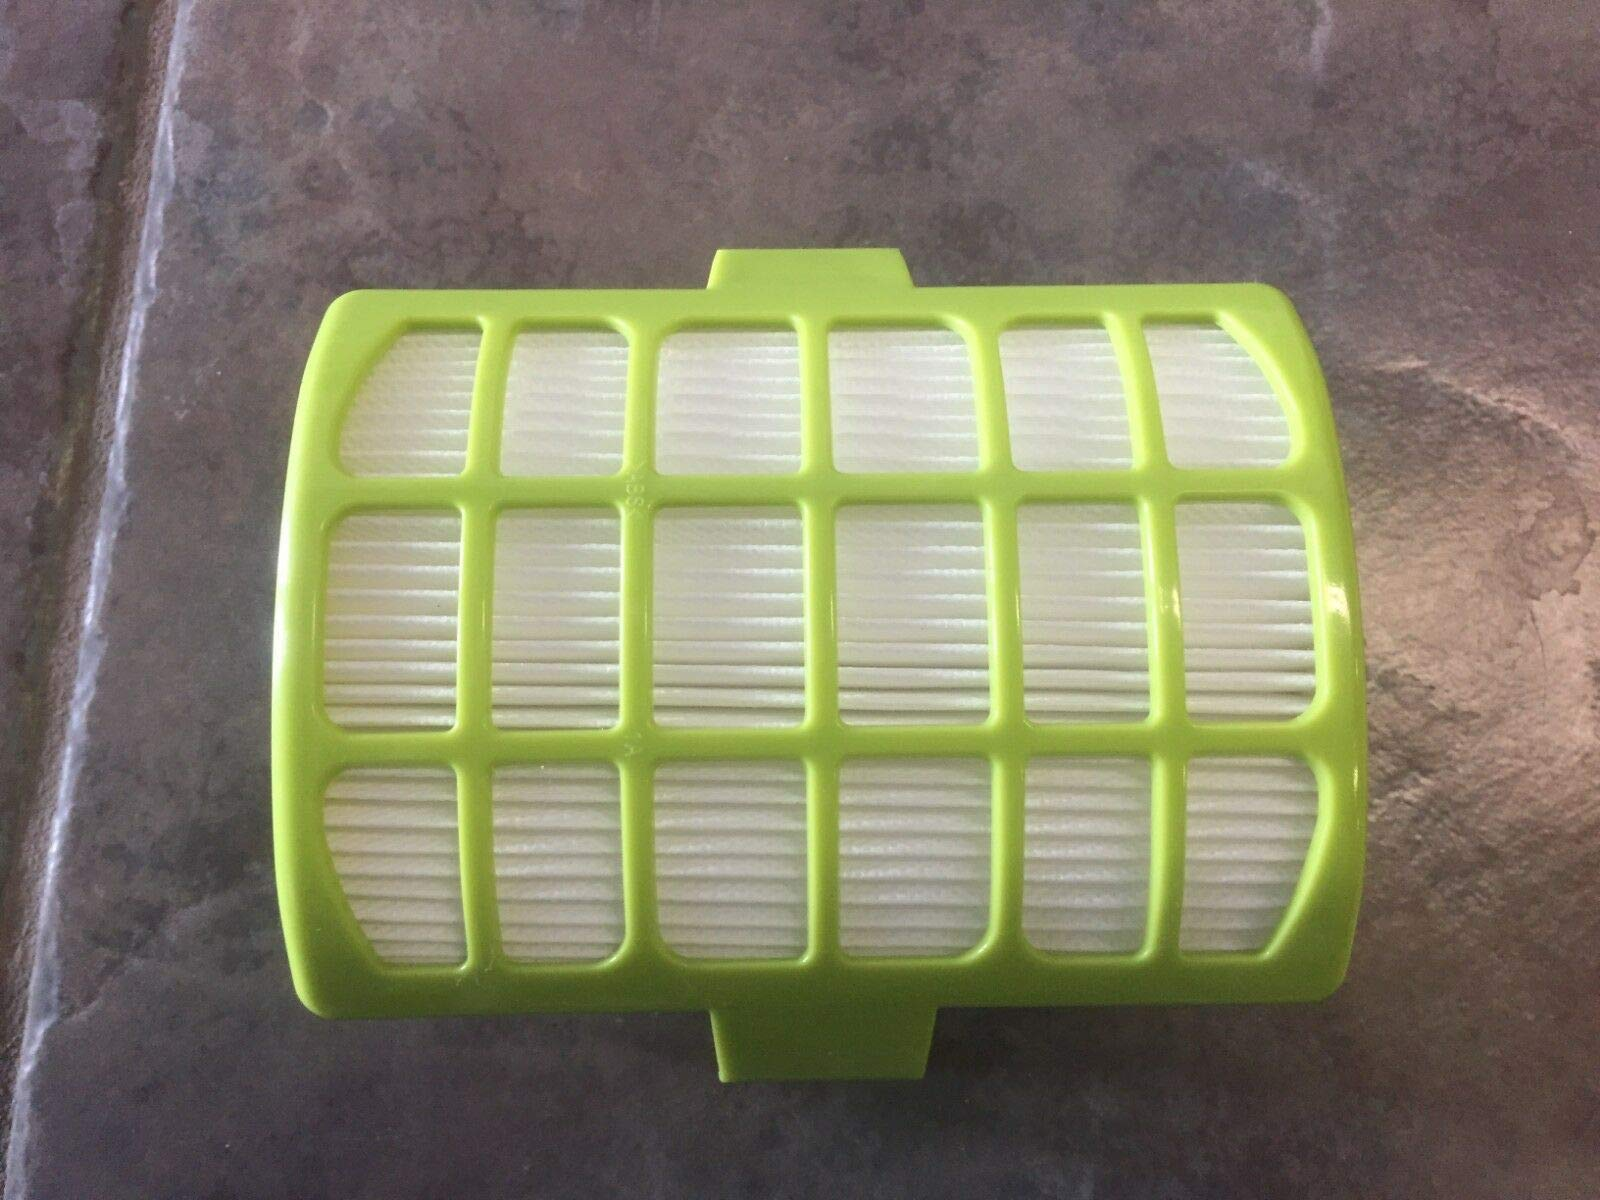 New Genuine Hoover Air Lift Deluxe Upright Bagless hepa Filter UH72510 440008154